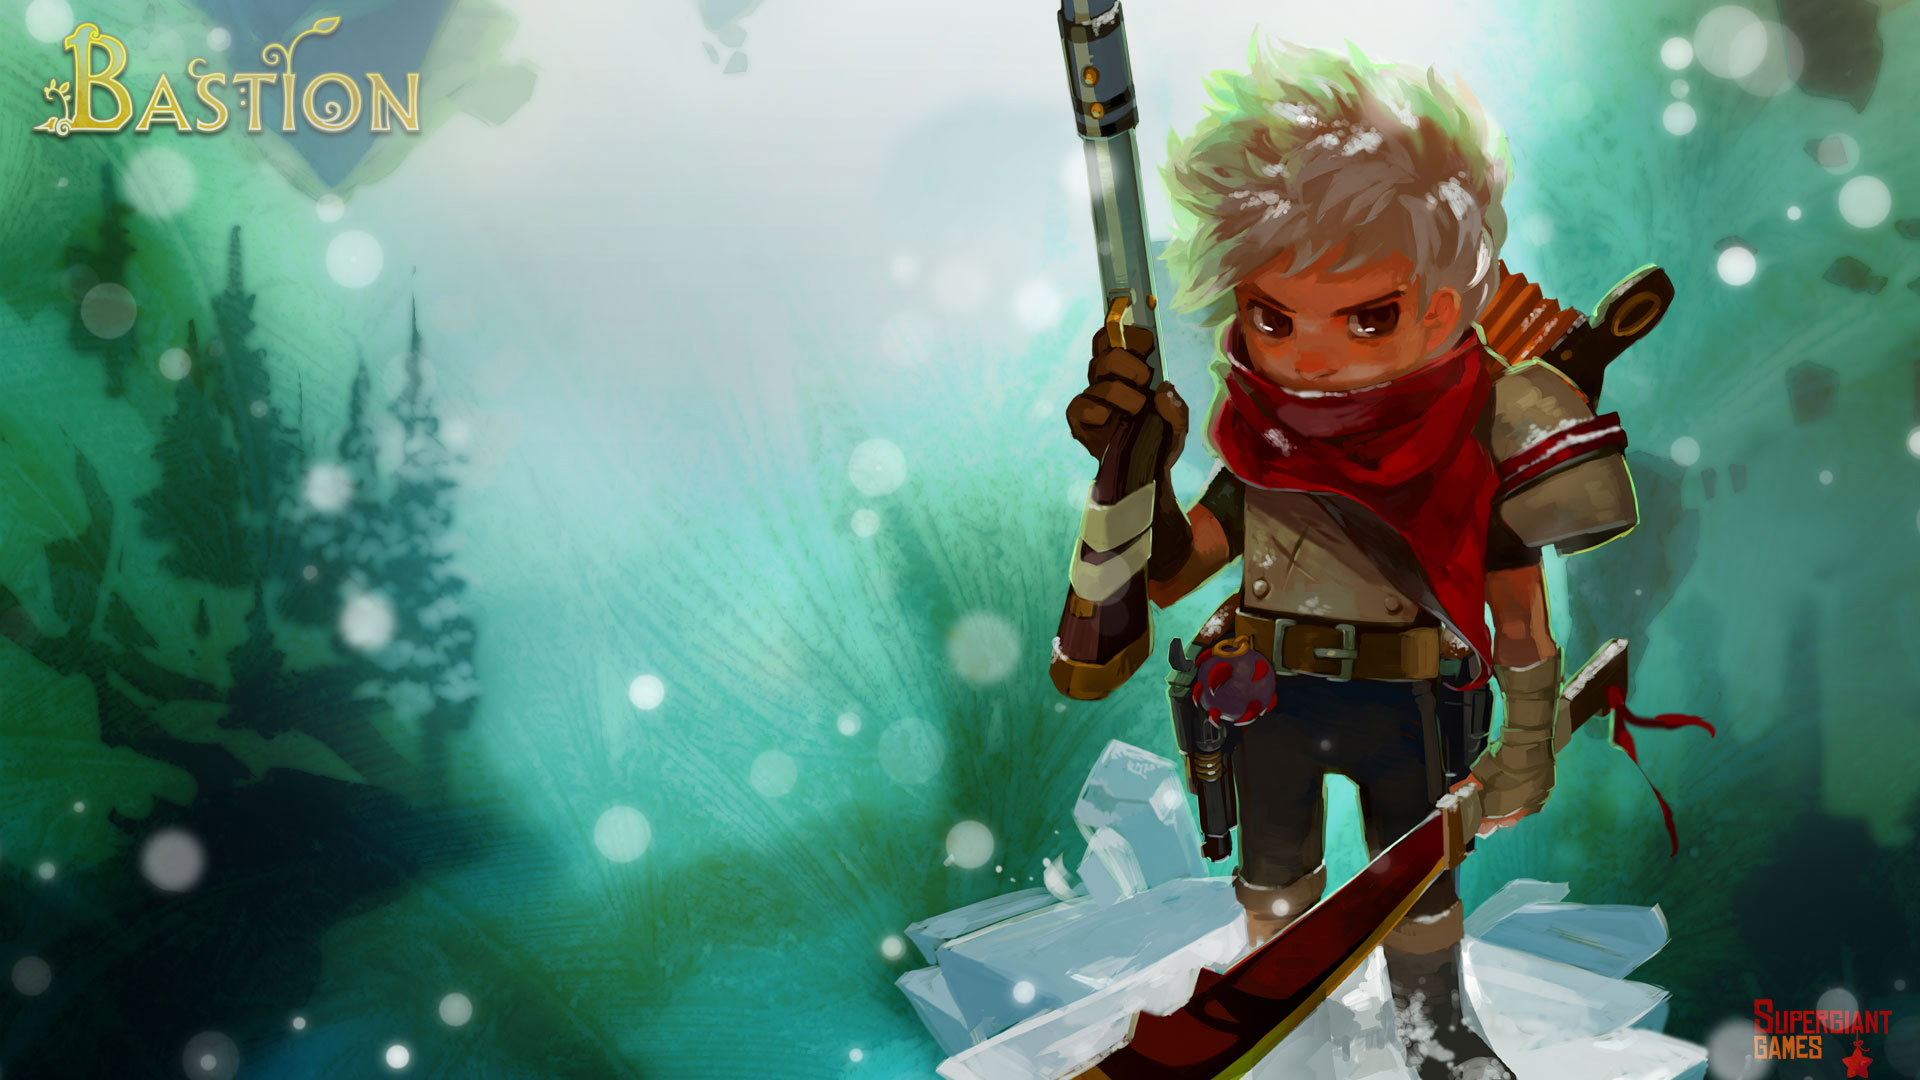 Free Bastion Wallpaper in 1920x1080